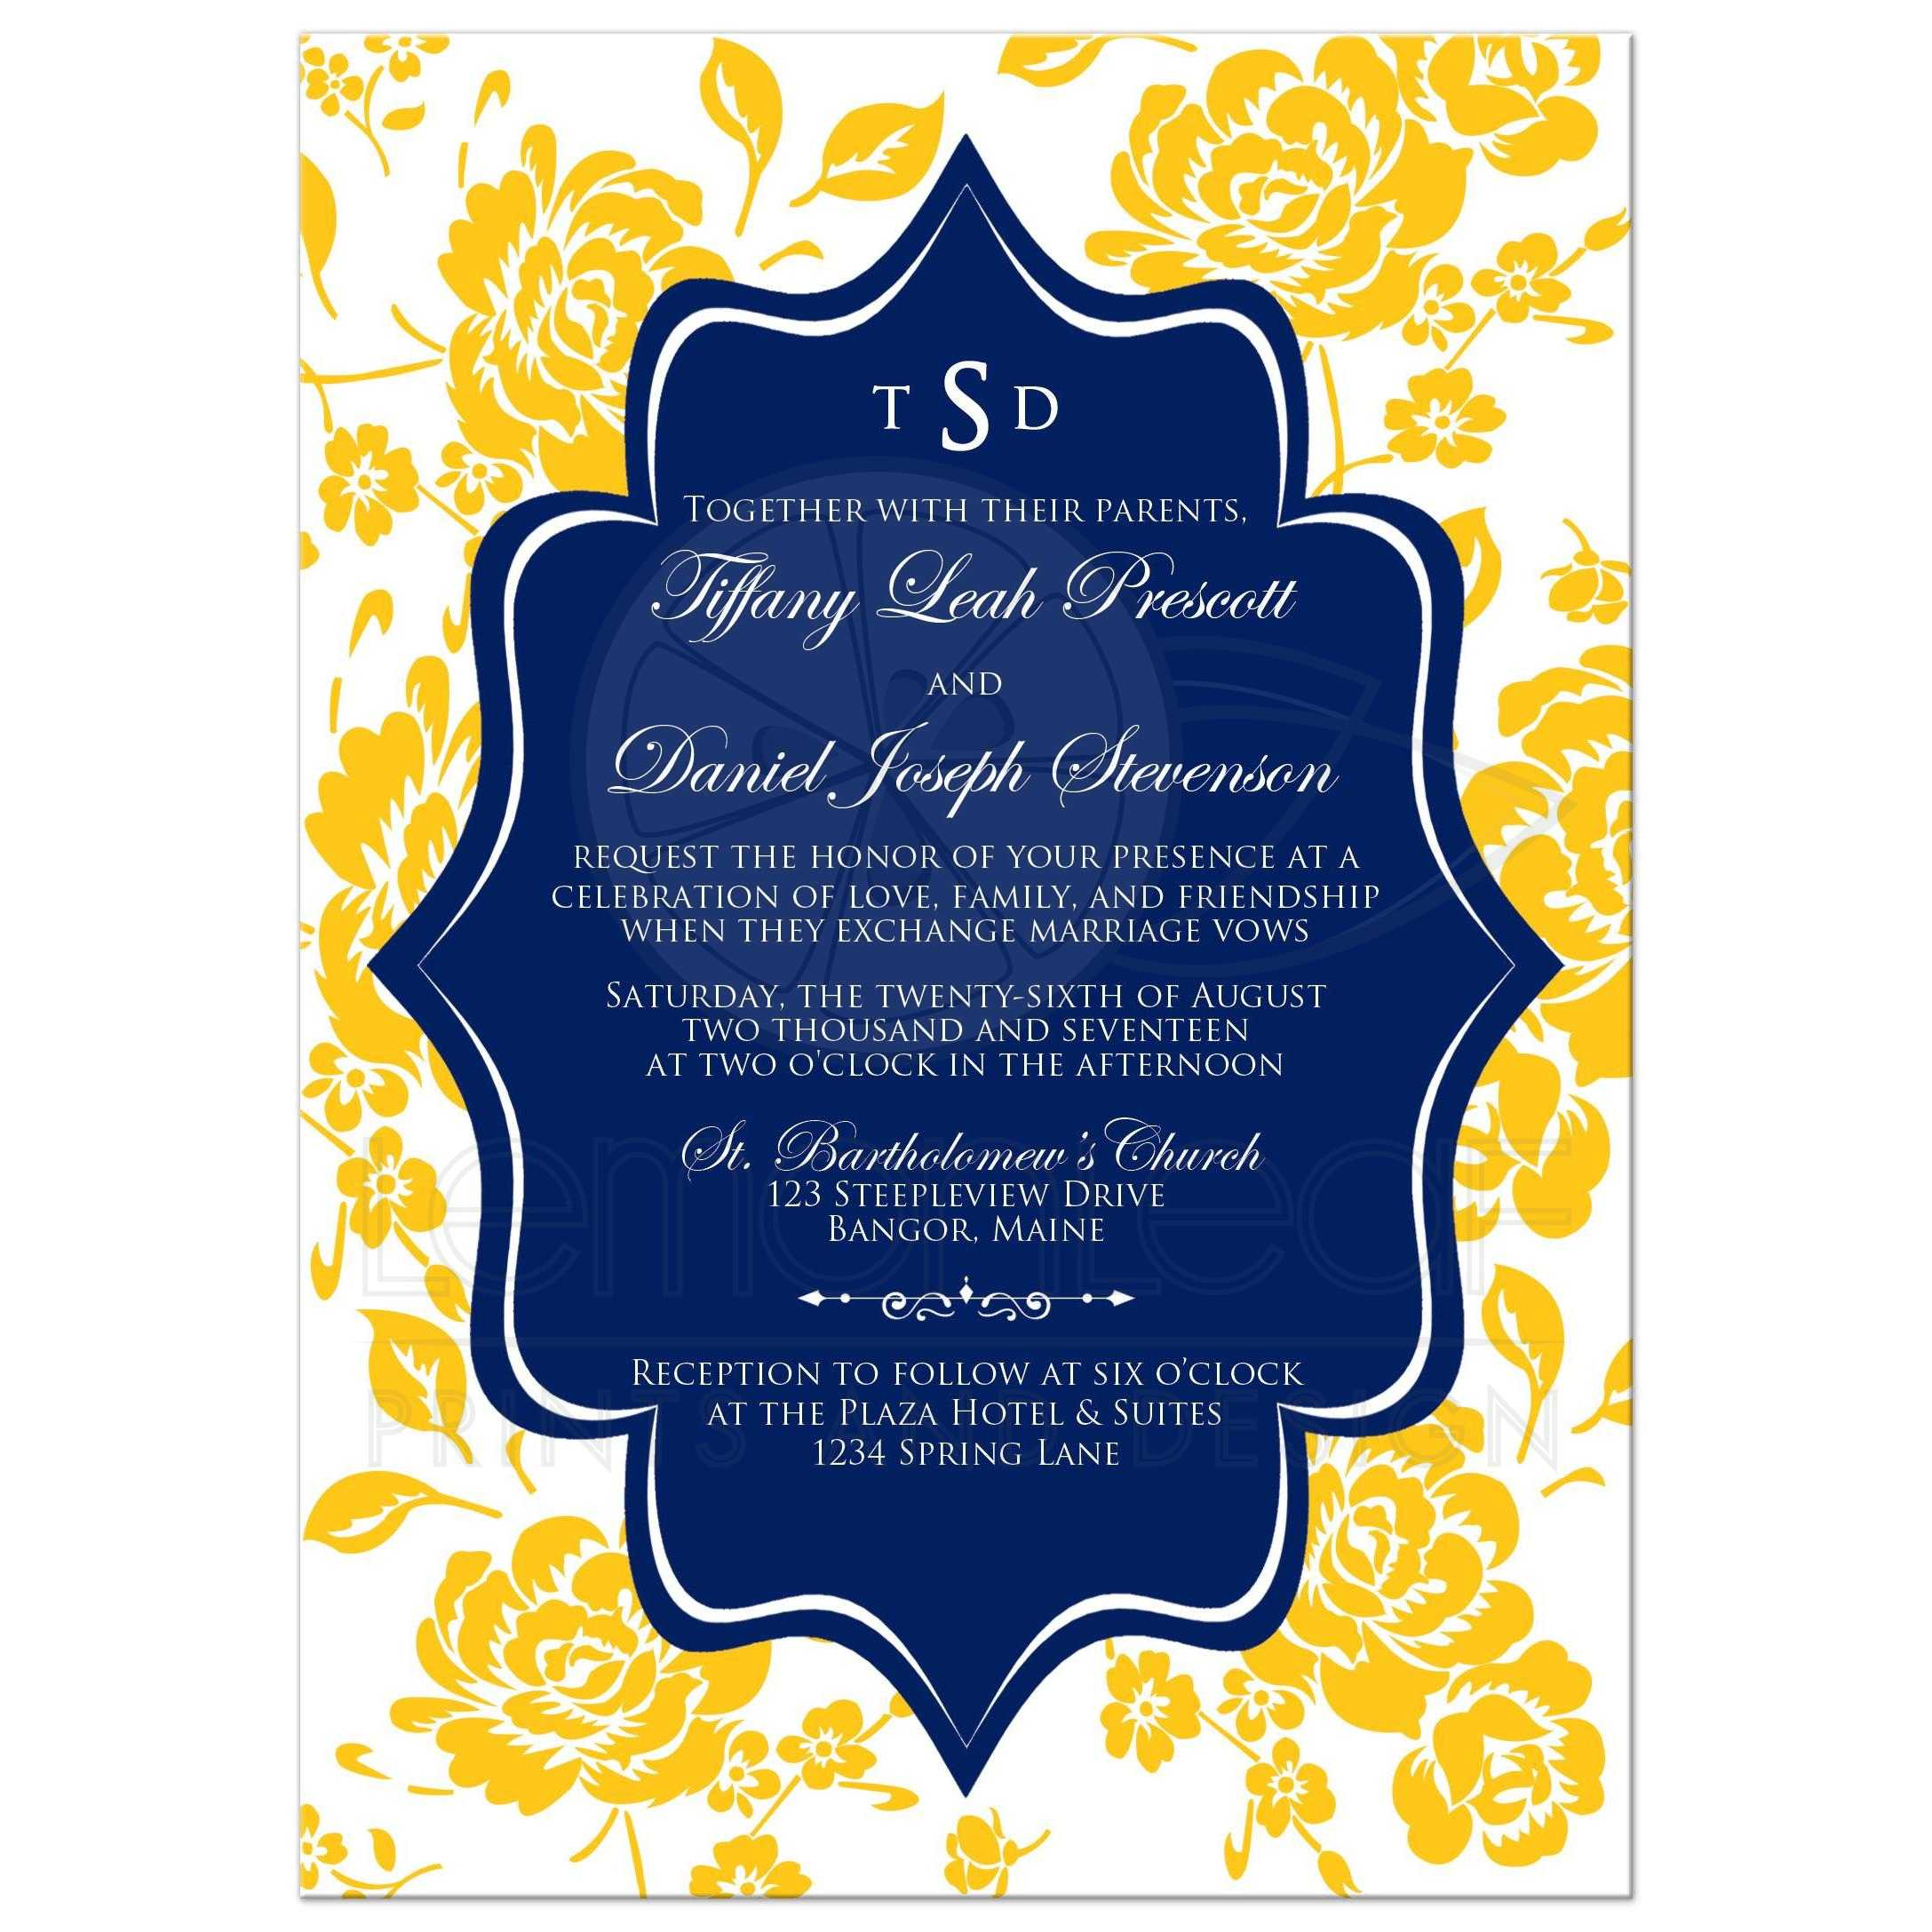 Monogrammed Wedding Invitation Navy Yellow White Floral Scroll